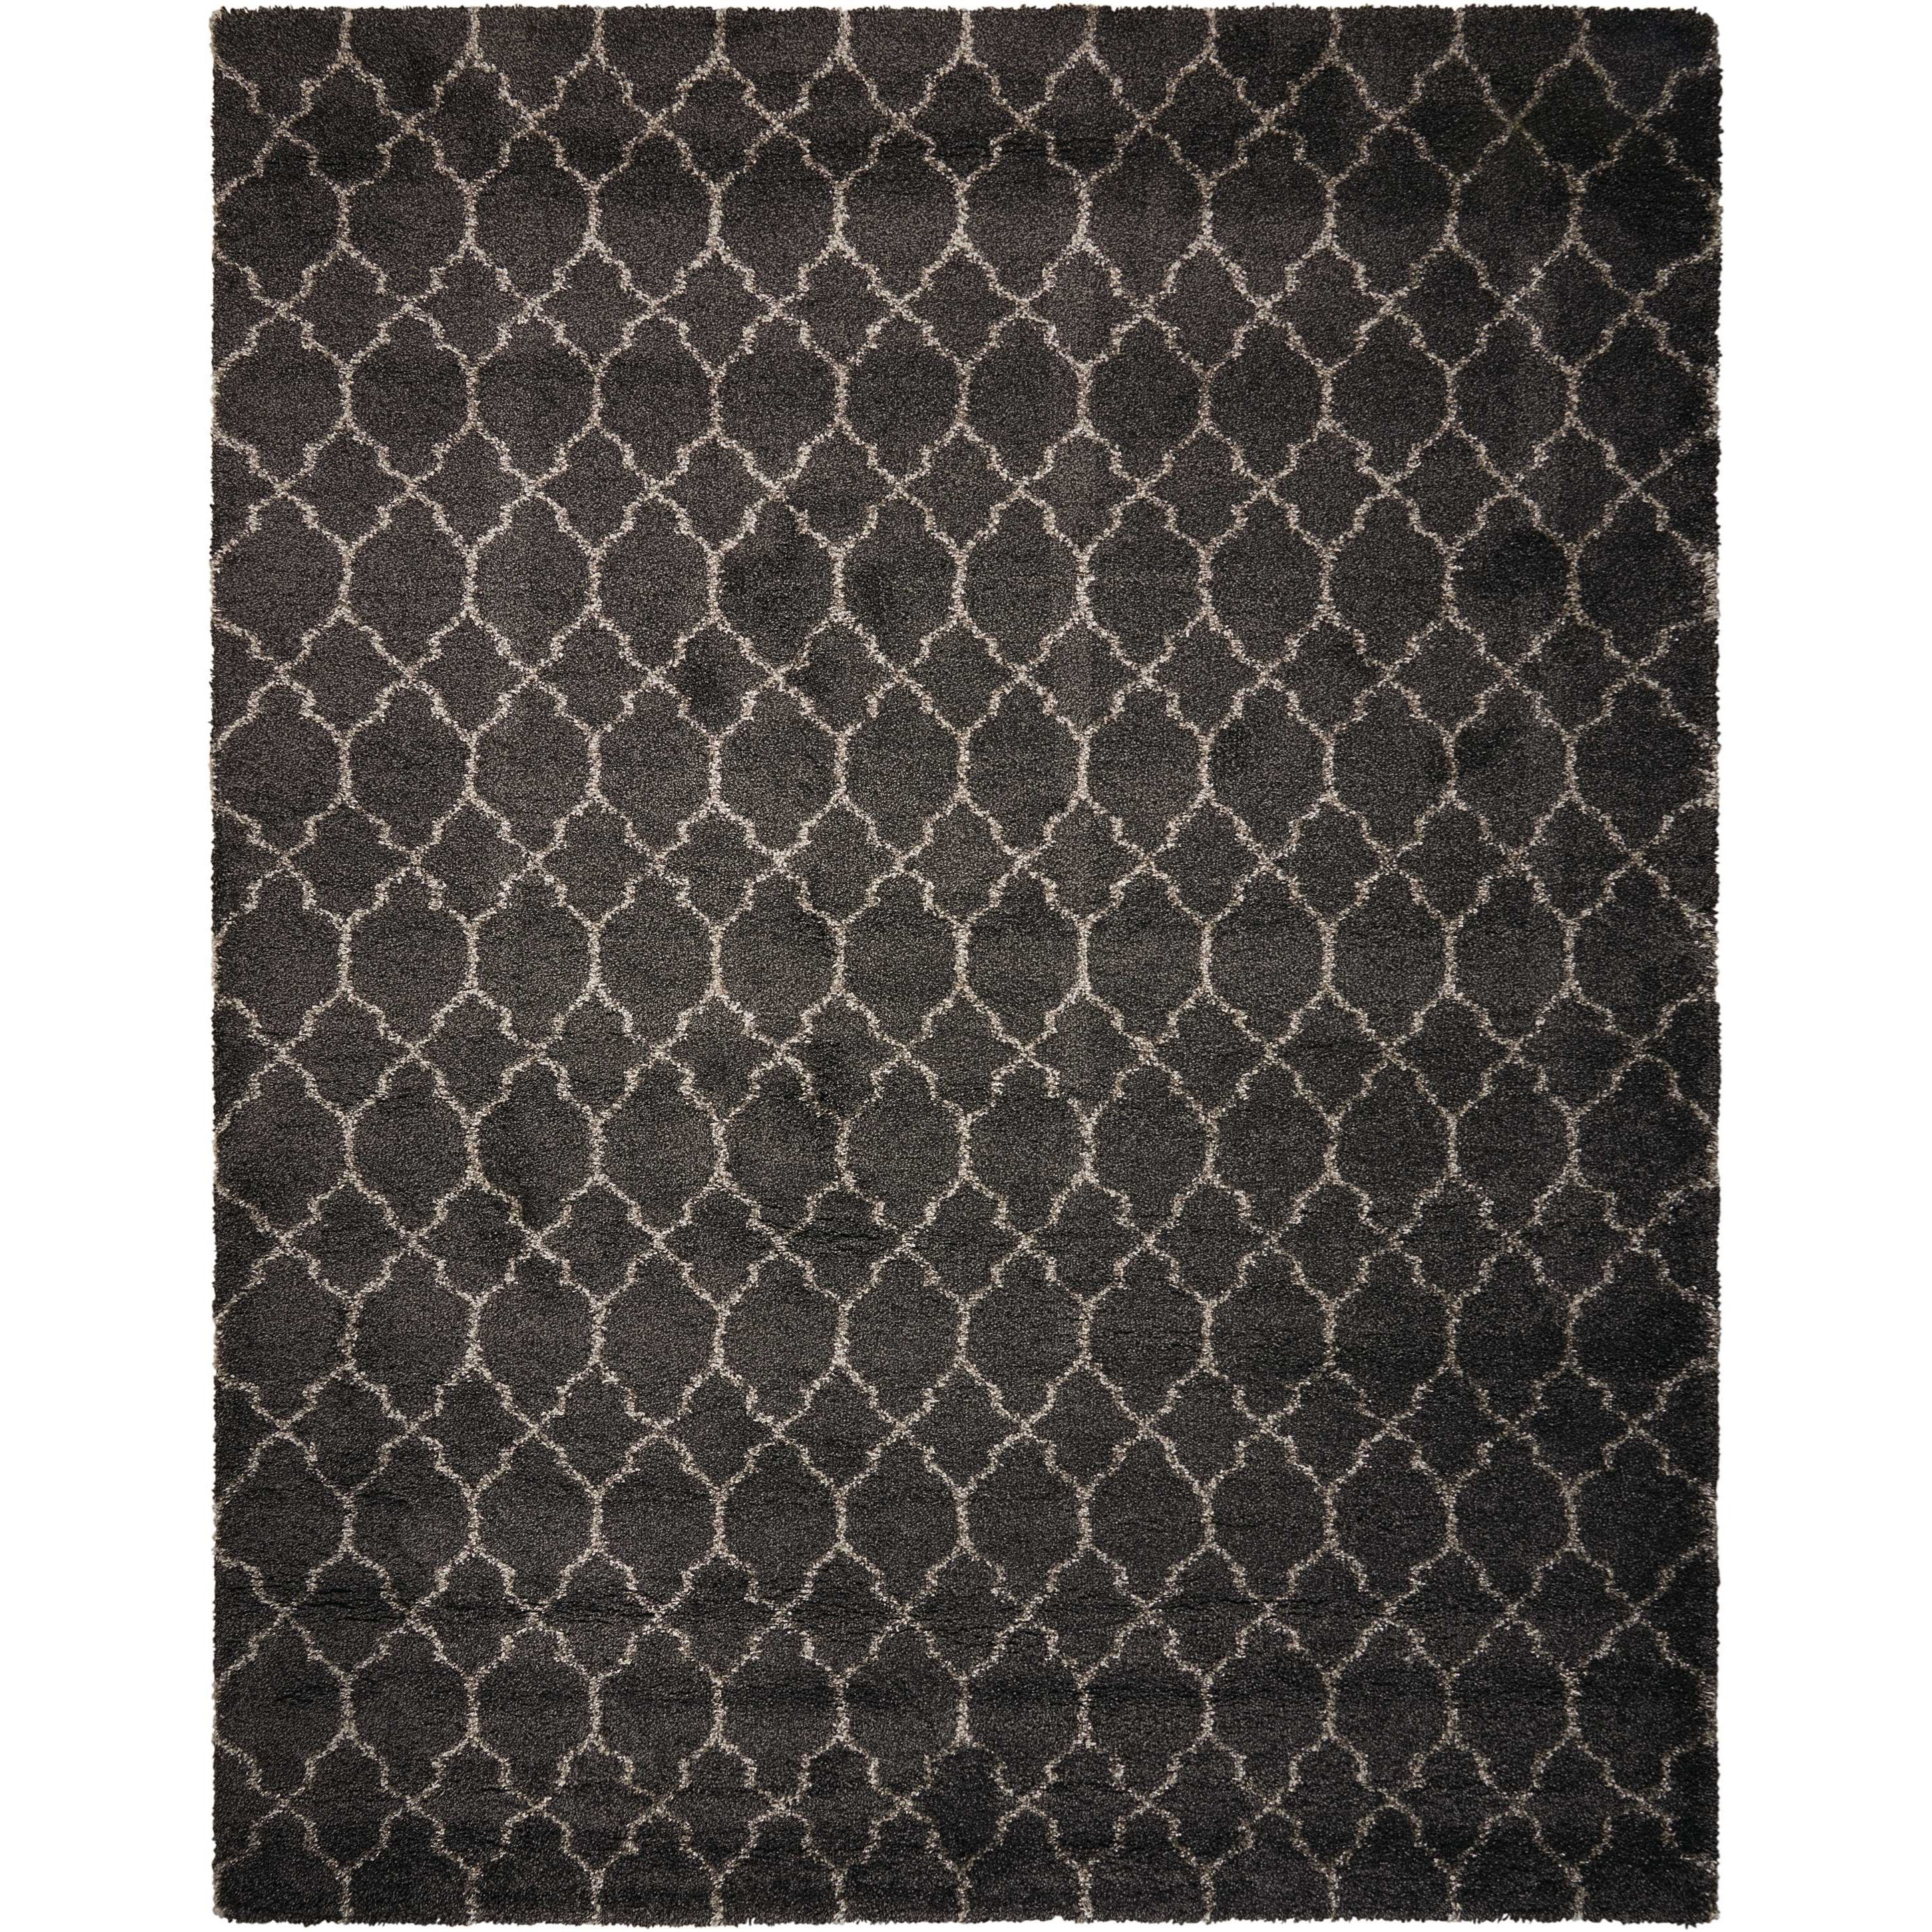 Amore Amore AMOR2 Black 10'x13'   Rug by Nourison at Home Collections Furniture